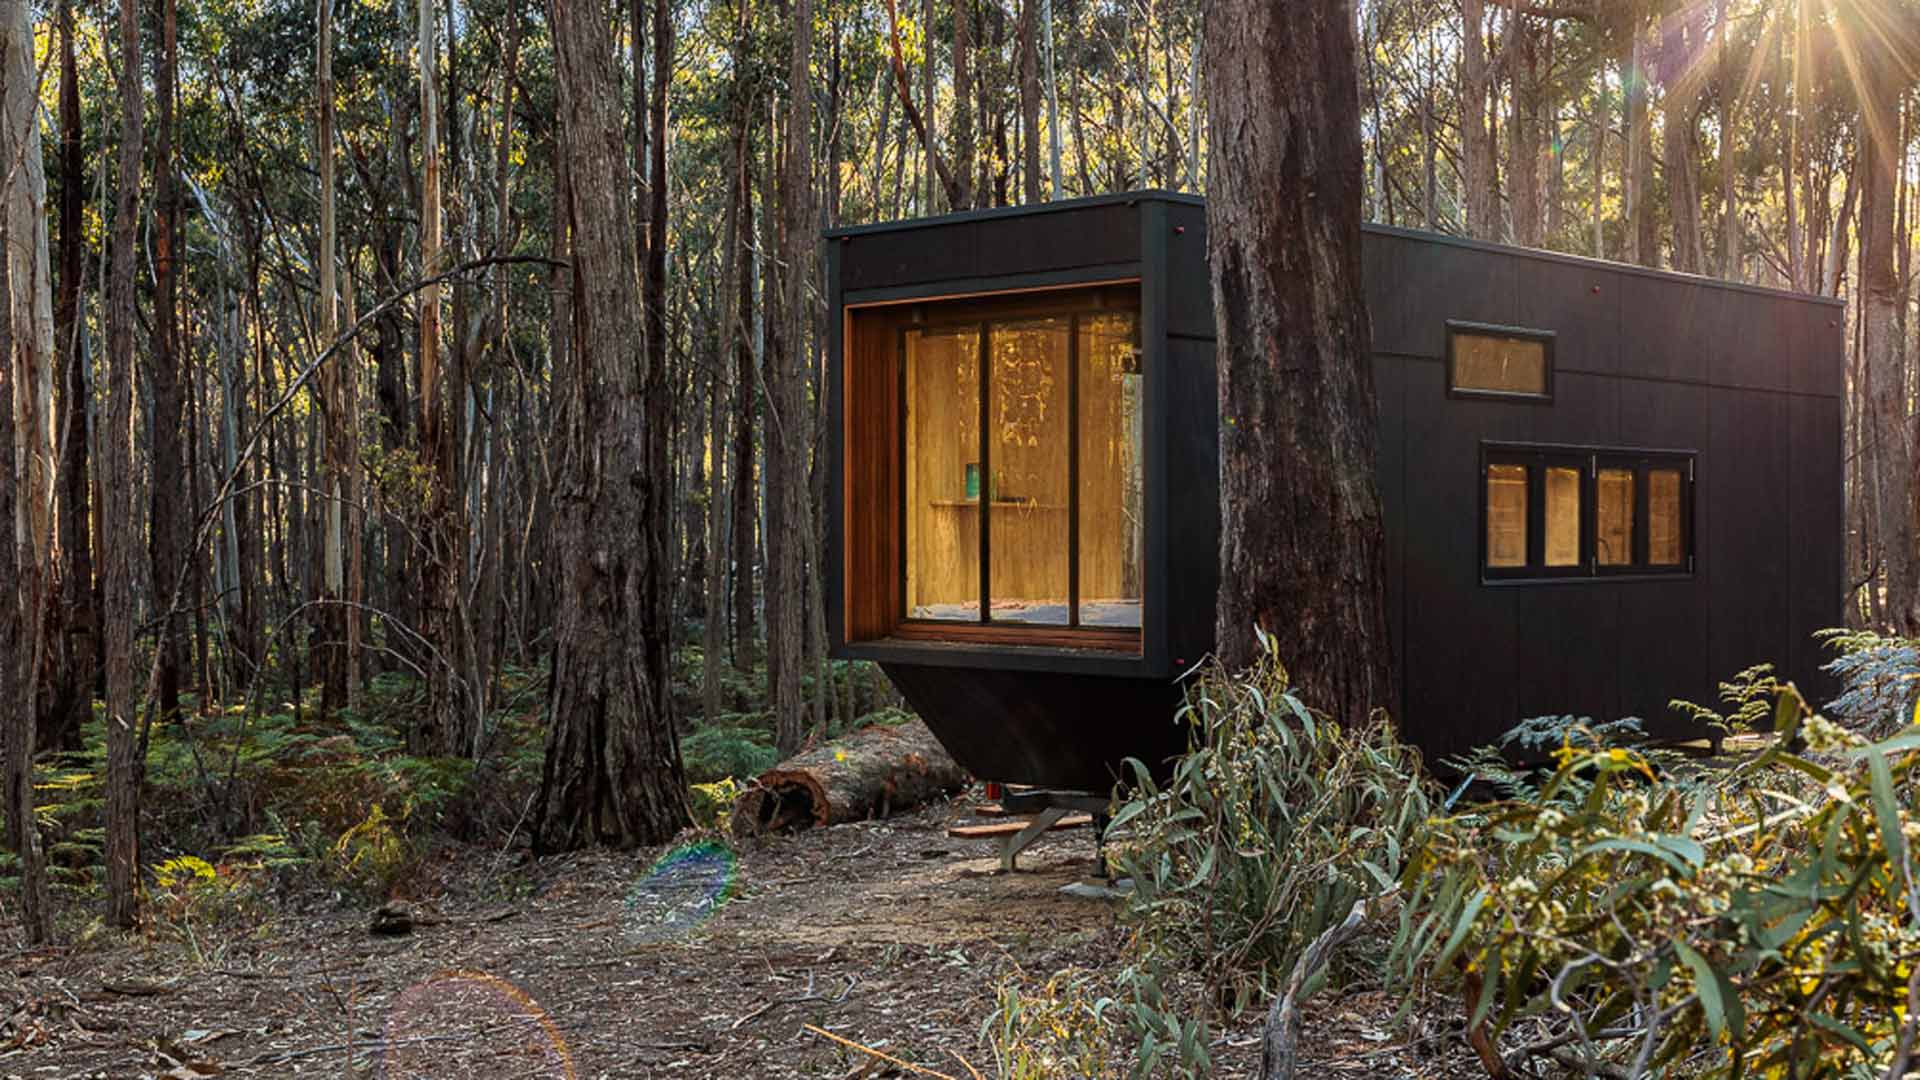 Cabn Lets You Stay in Your Own Tiny Solar-Powered House in the Victorian Wilderness